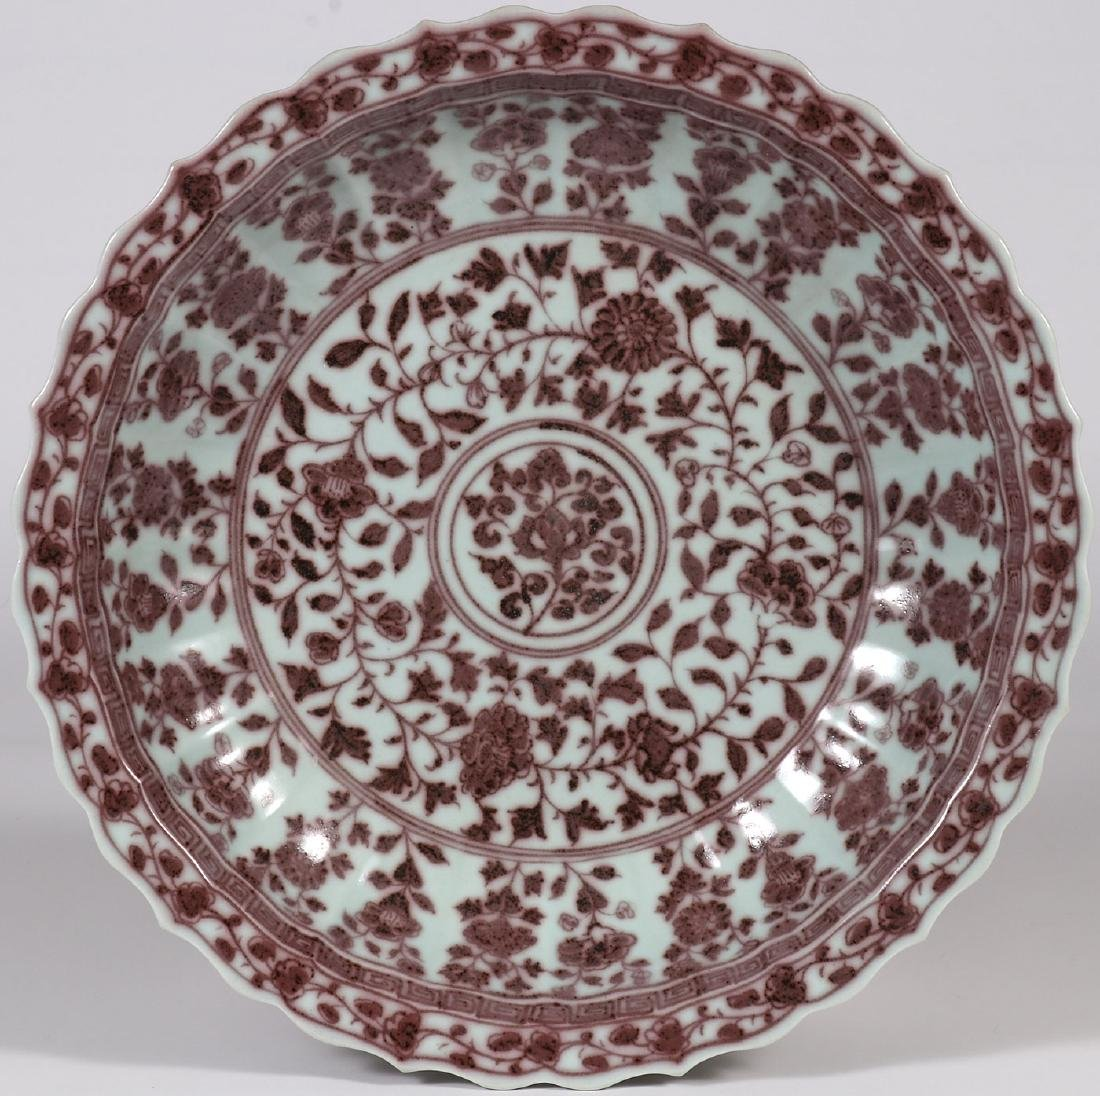 A LARGE CHINESE PORCELAIN CHARGER